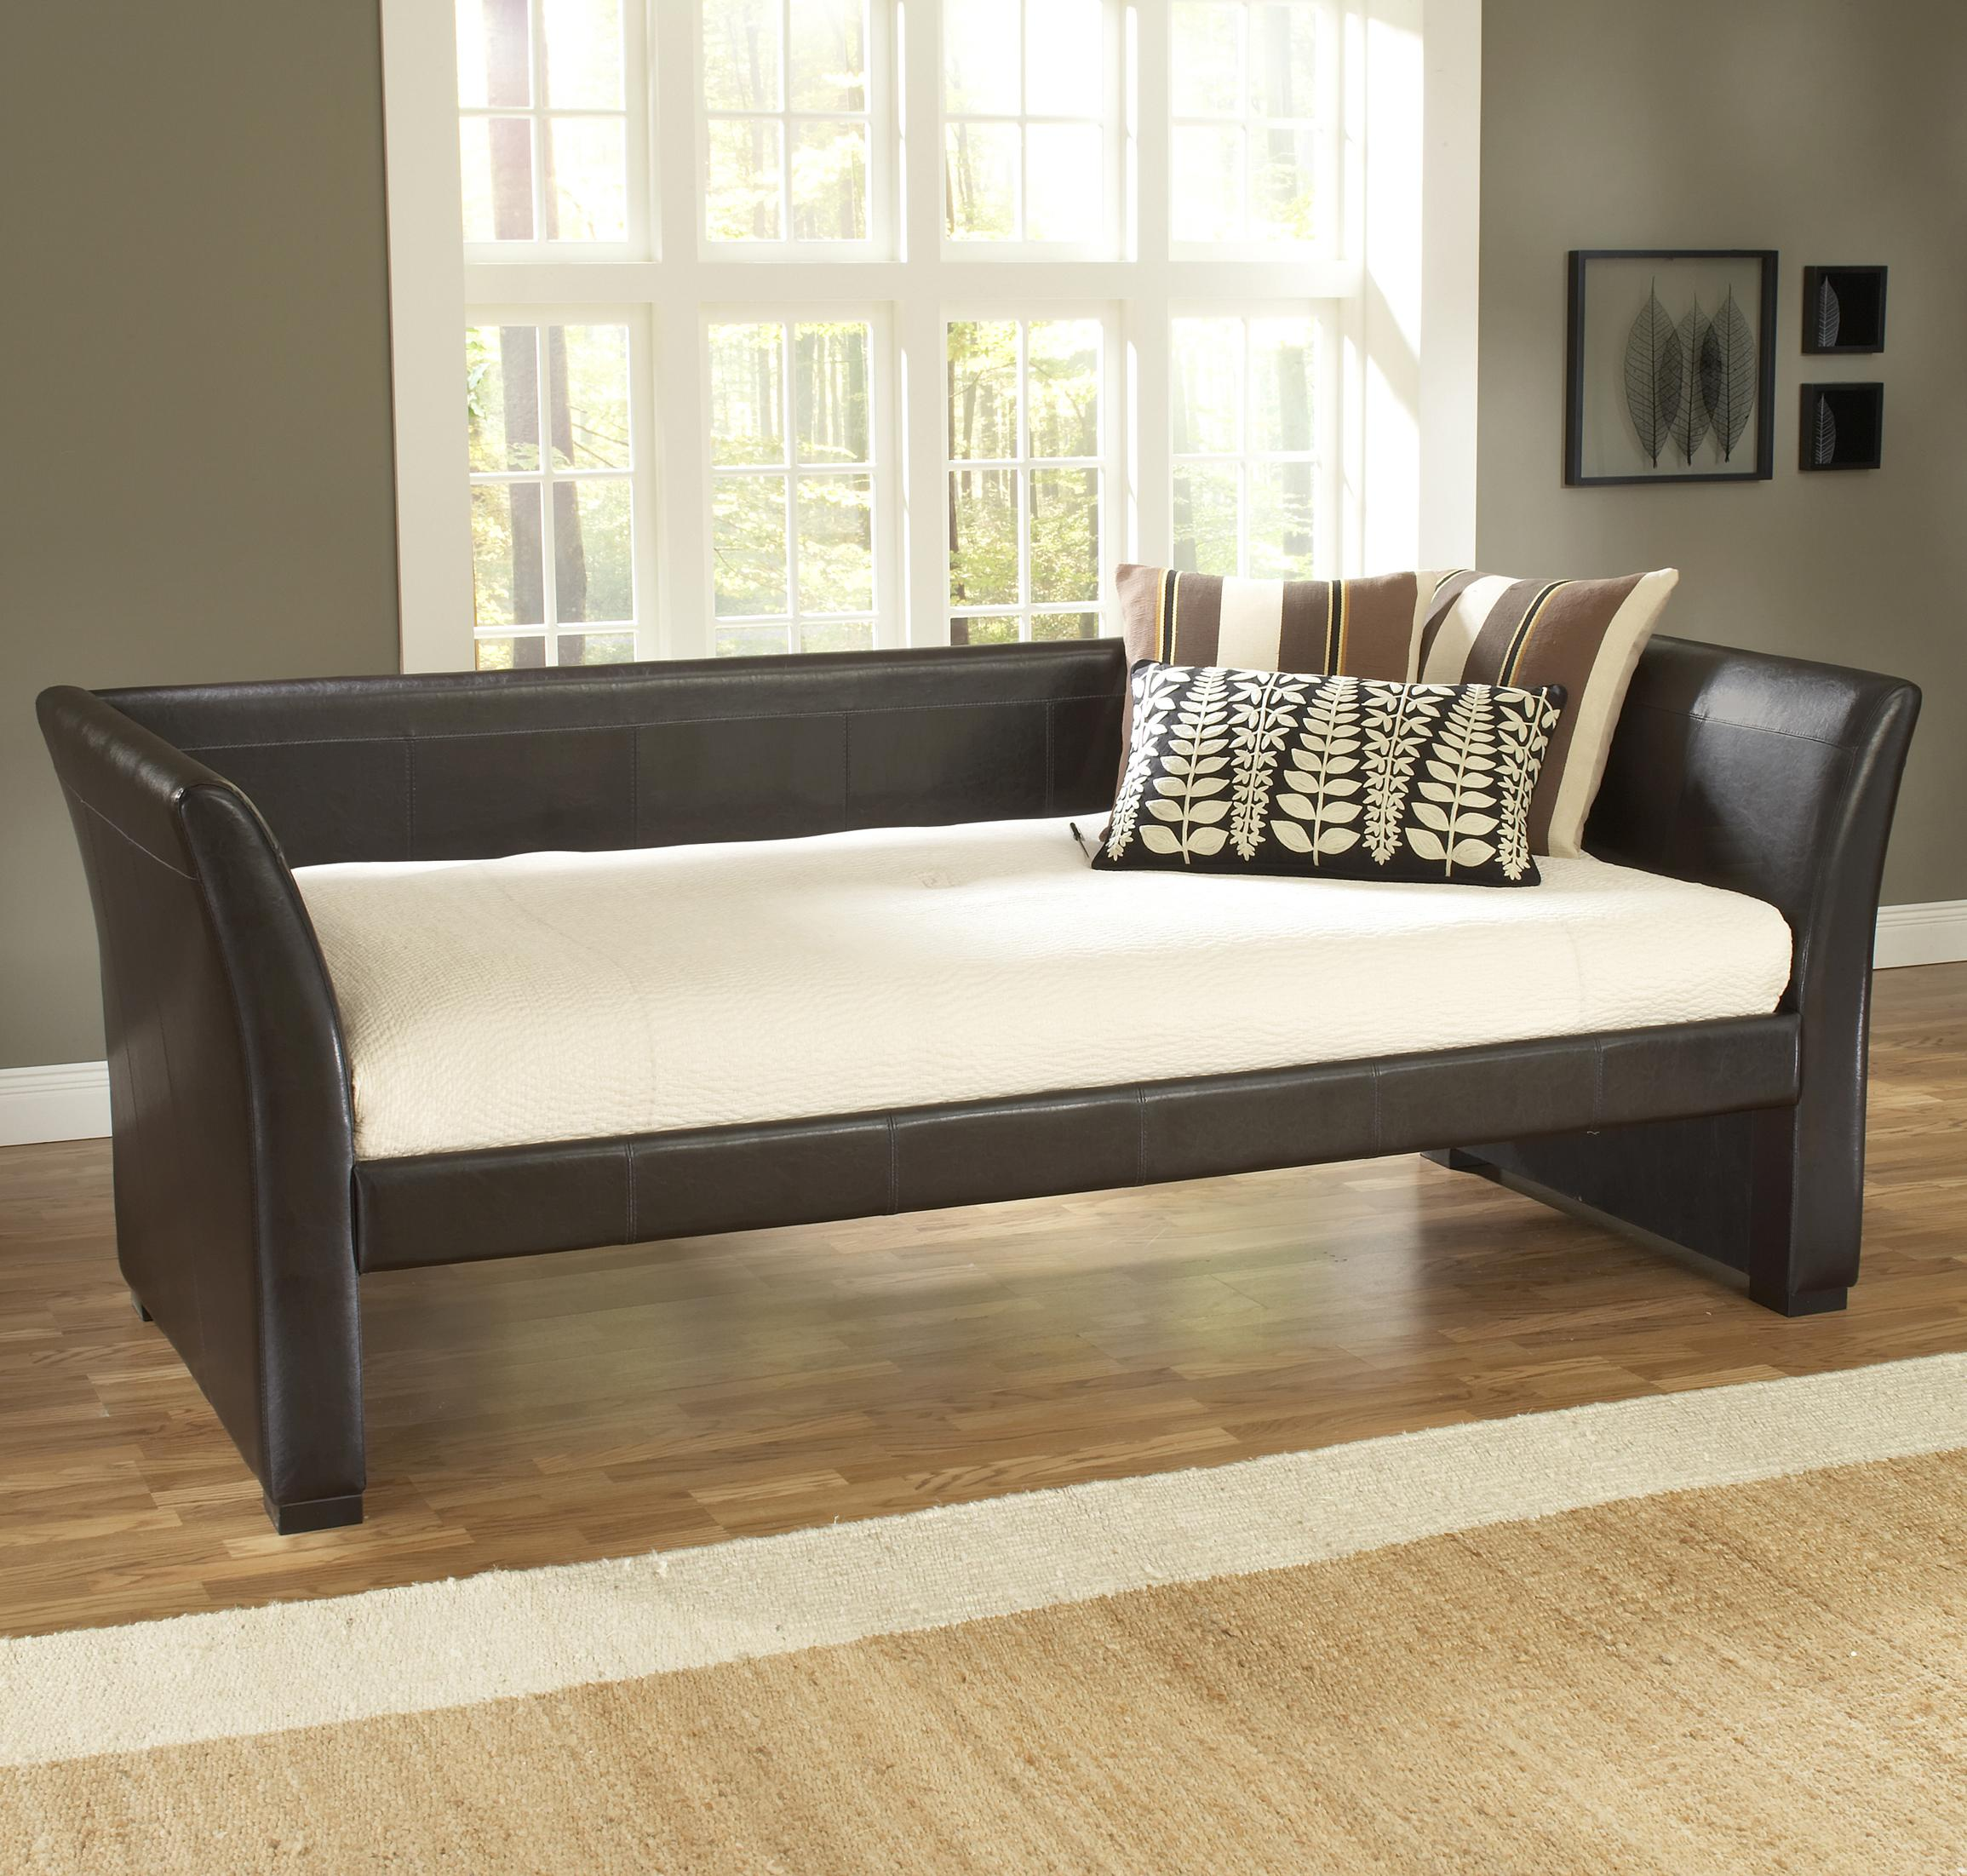 Hillsdale Daybeds Twin Malibu Daybed - Item Number: 1519DB